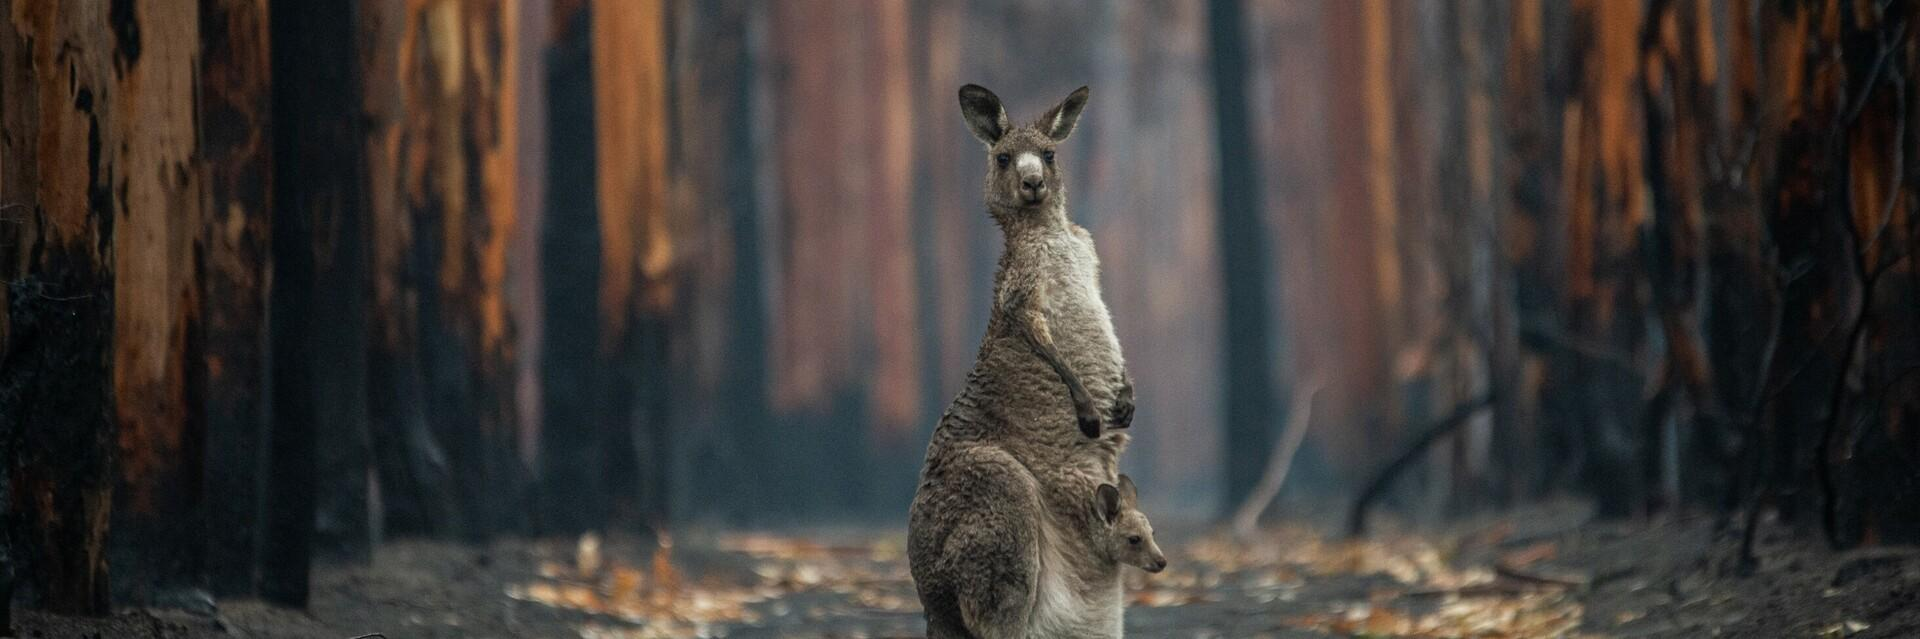 An Eastern grey kangaroo and her joey who survived the forest fires in Mallacoota. Australia, 2020.